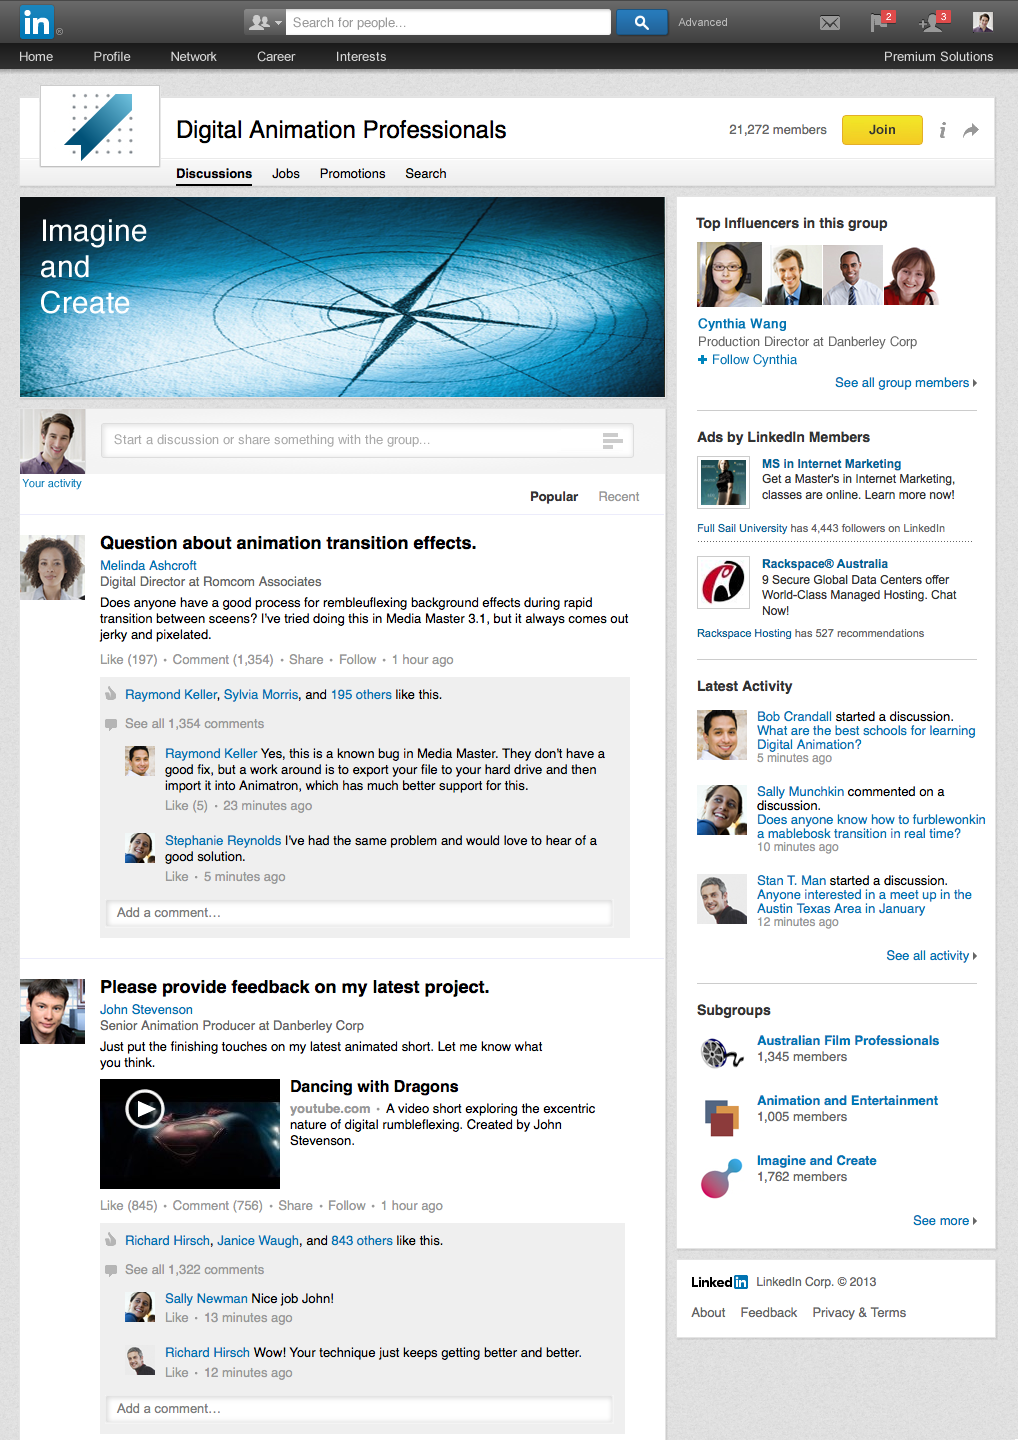 linkedin groups redesign 2013